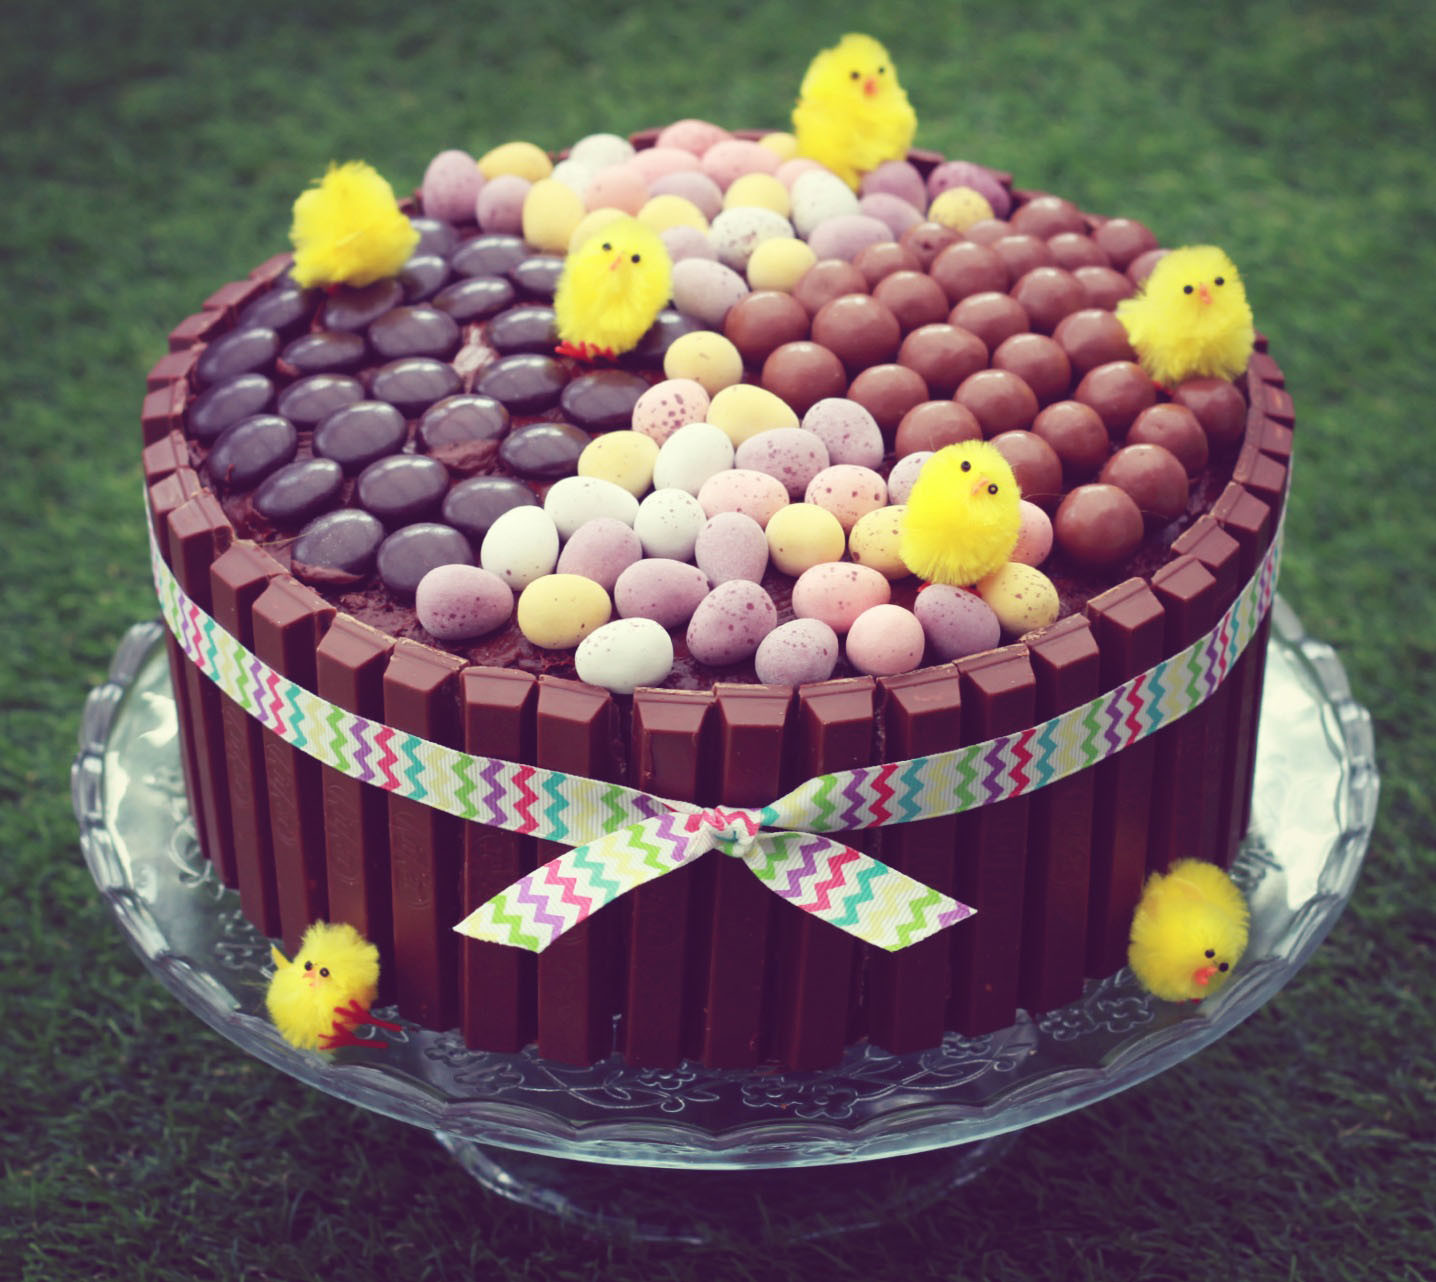 Easter Cake Recipes  Chocolate fudge cake showstopper for Easter